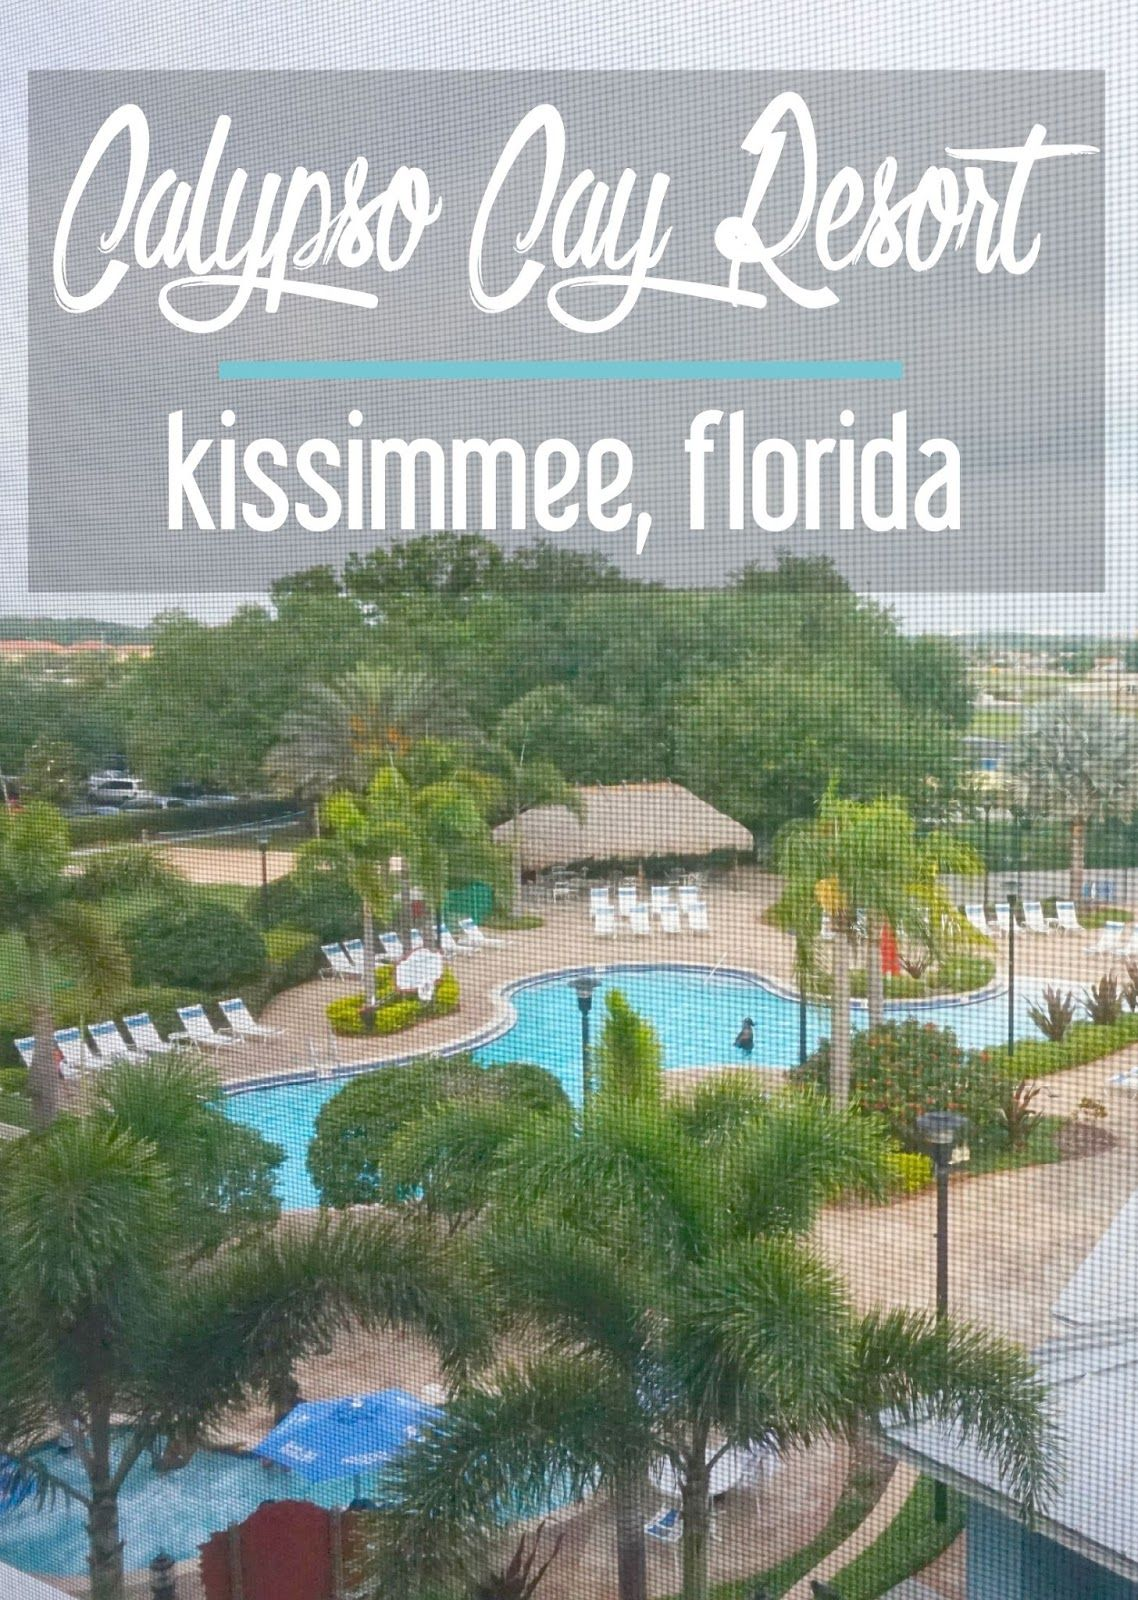 Gaylord Palms Review | Palm, Palm resort and Resorts